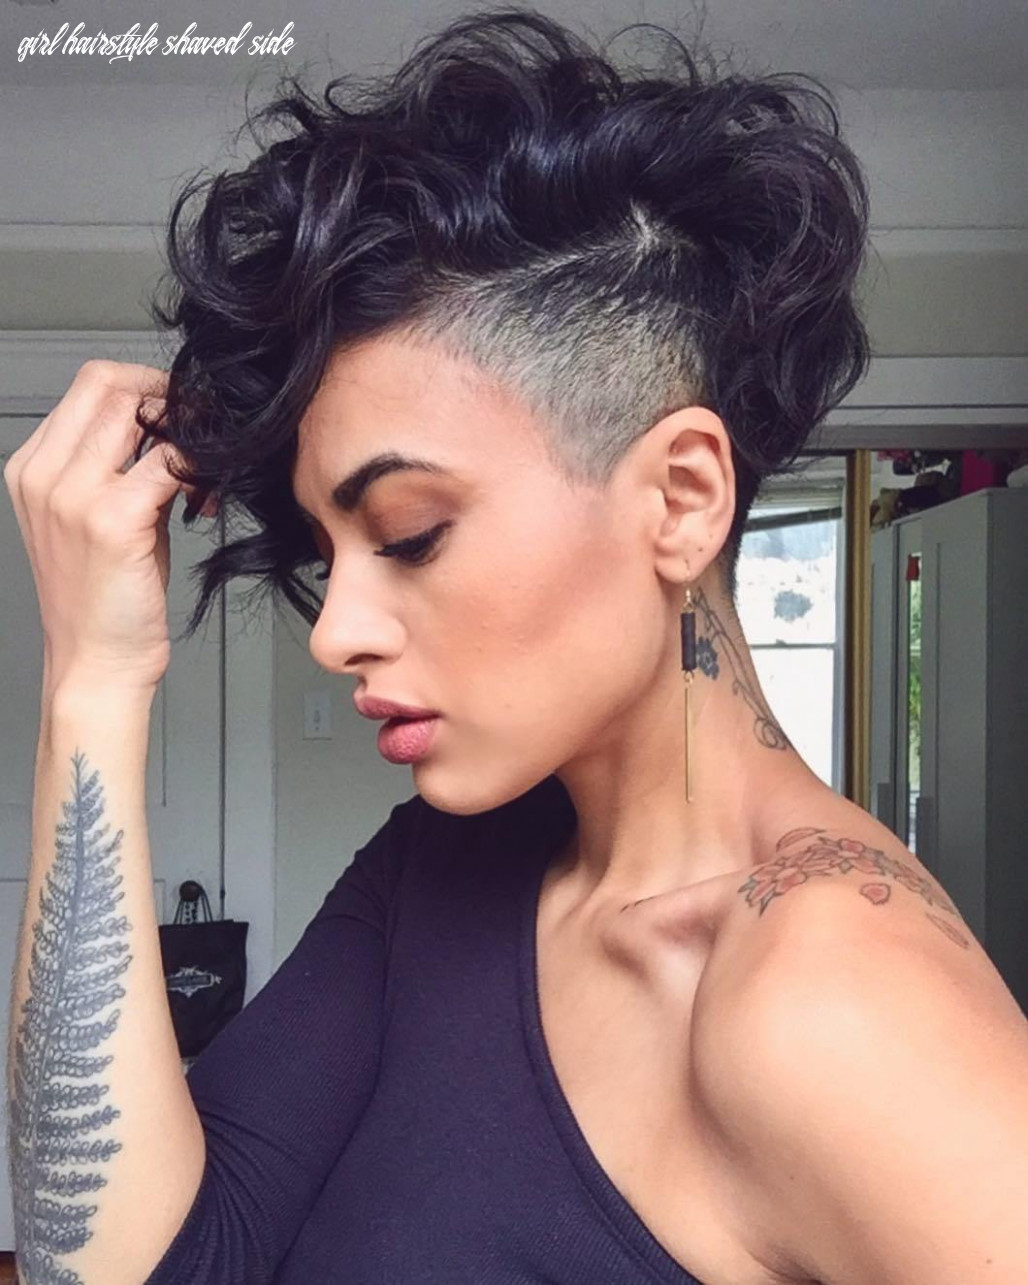 11 bold shaved hairstyles for women | shaved hair designs girl hairstyle shaved side